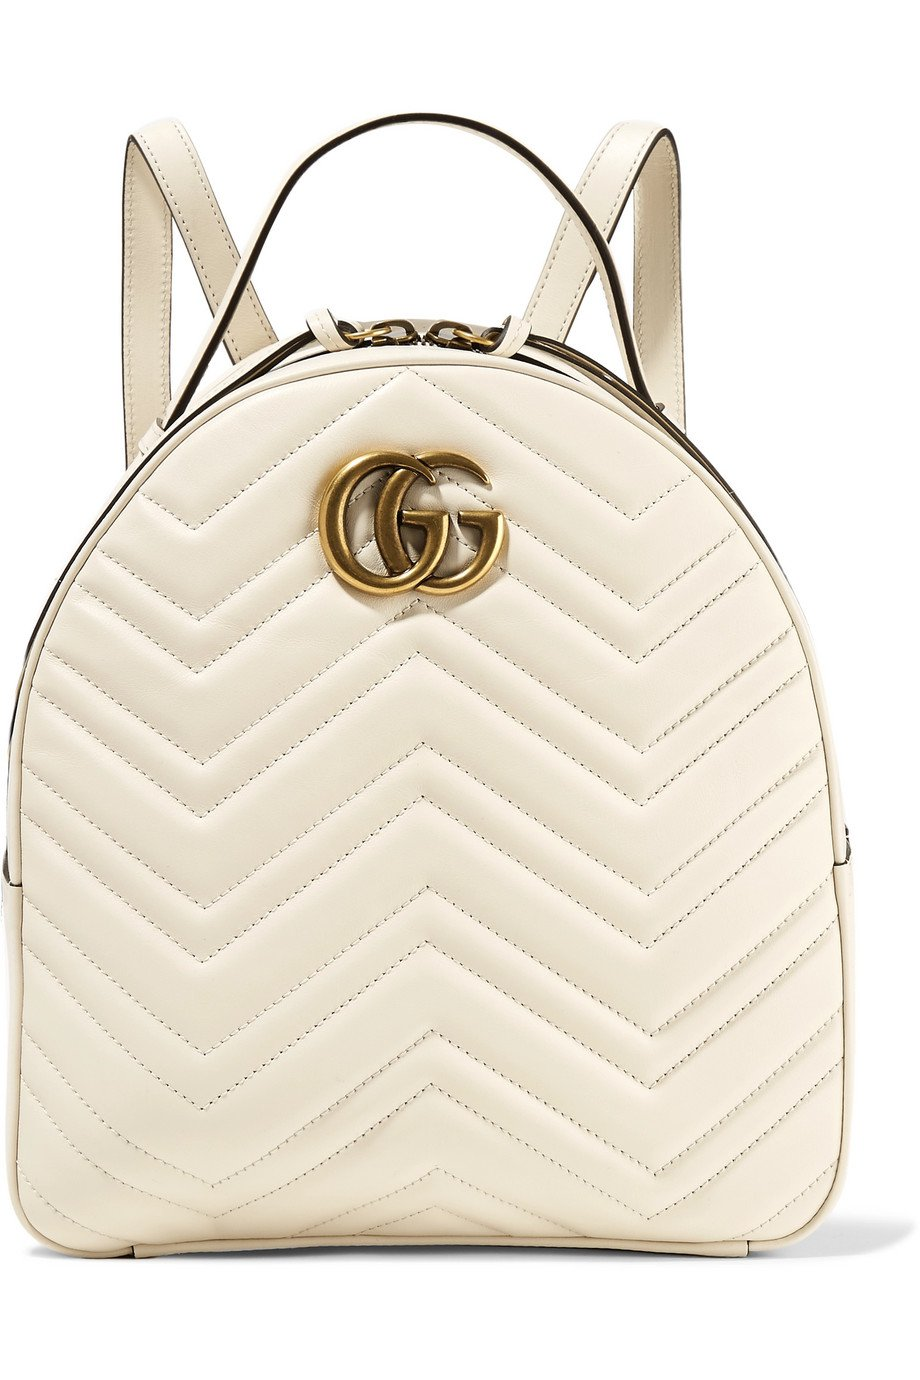 Gucci | GG Marmont quilted leather backpack | NET-A-PORTER.COM